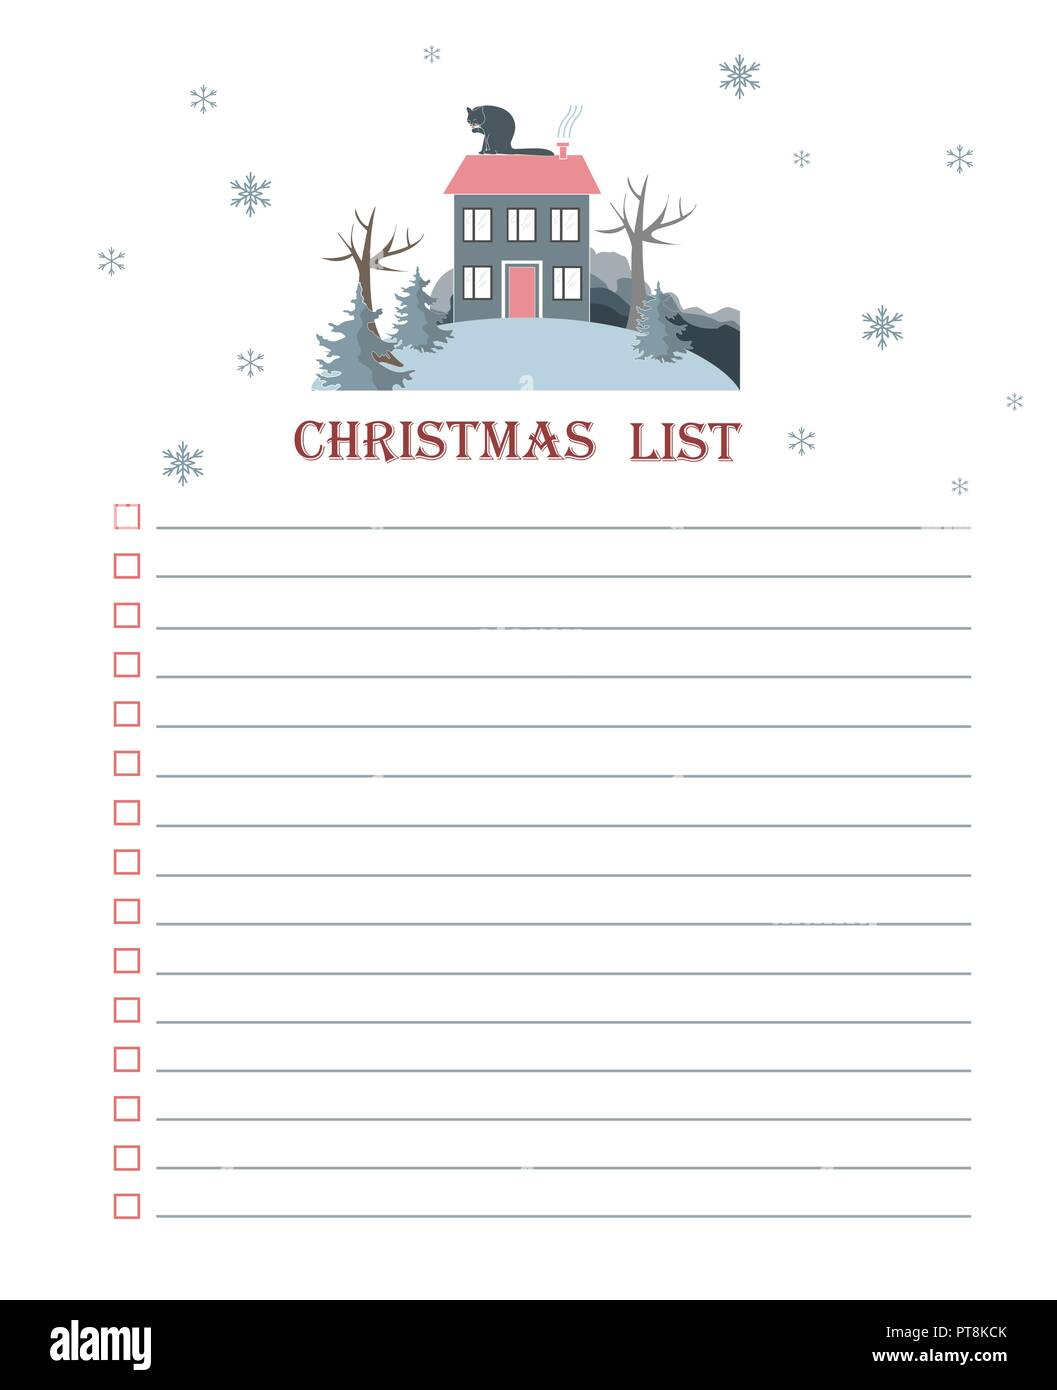 template for christmas to do list with cartoon flat winter landscape